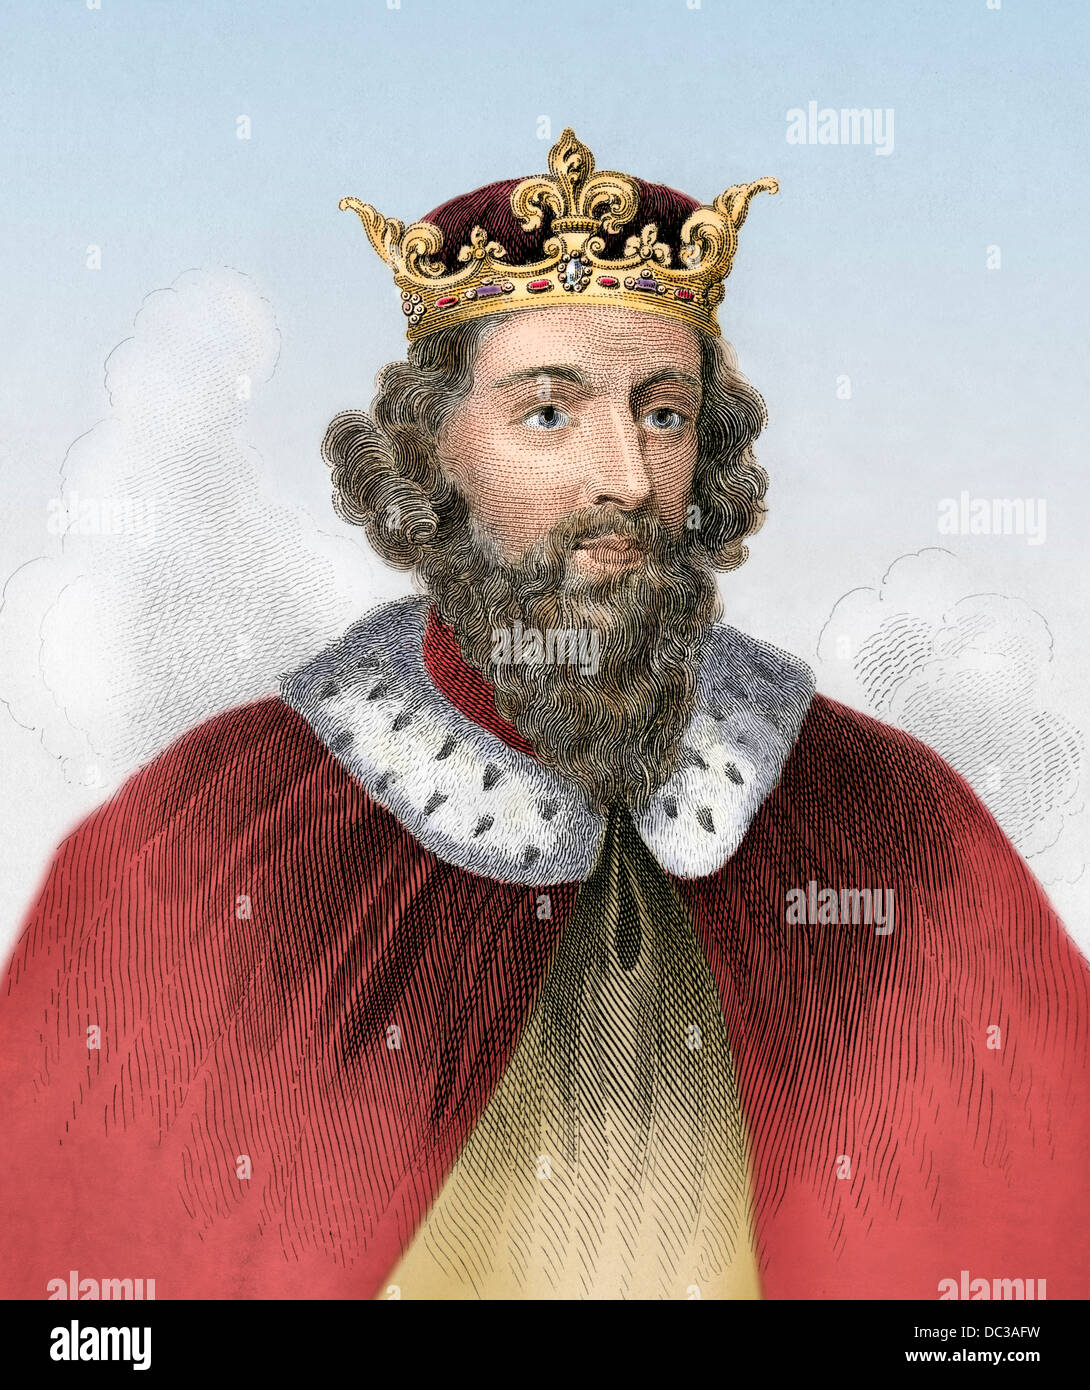 Alfred The Great King Of Wes800s A D Hand Colored